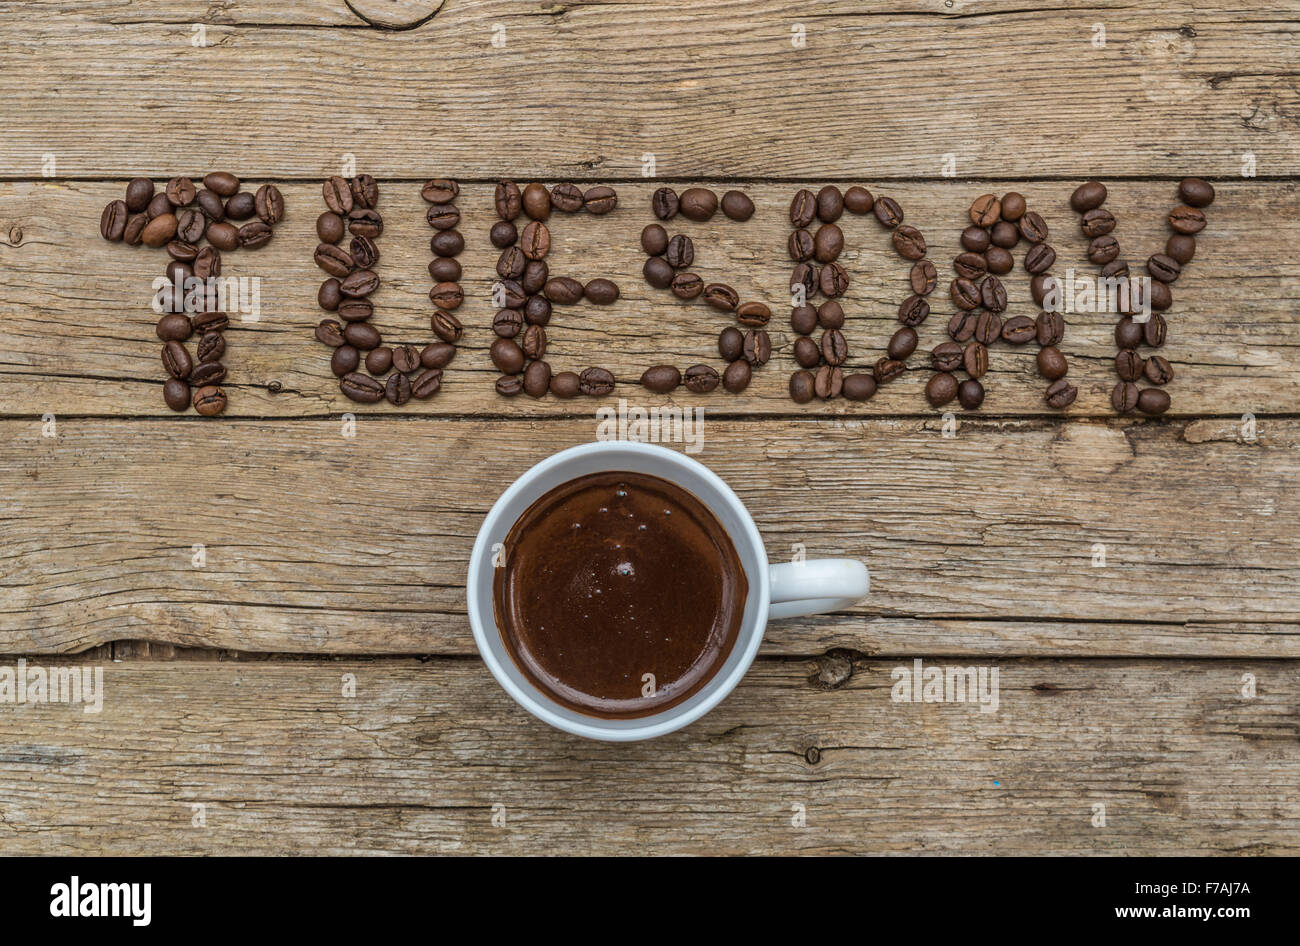 Cup of coffee on wooden background and TUESDAY coffee beans Stock Photo